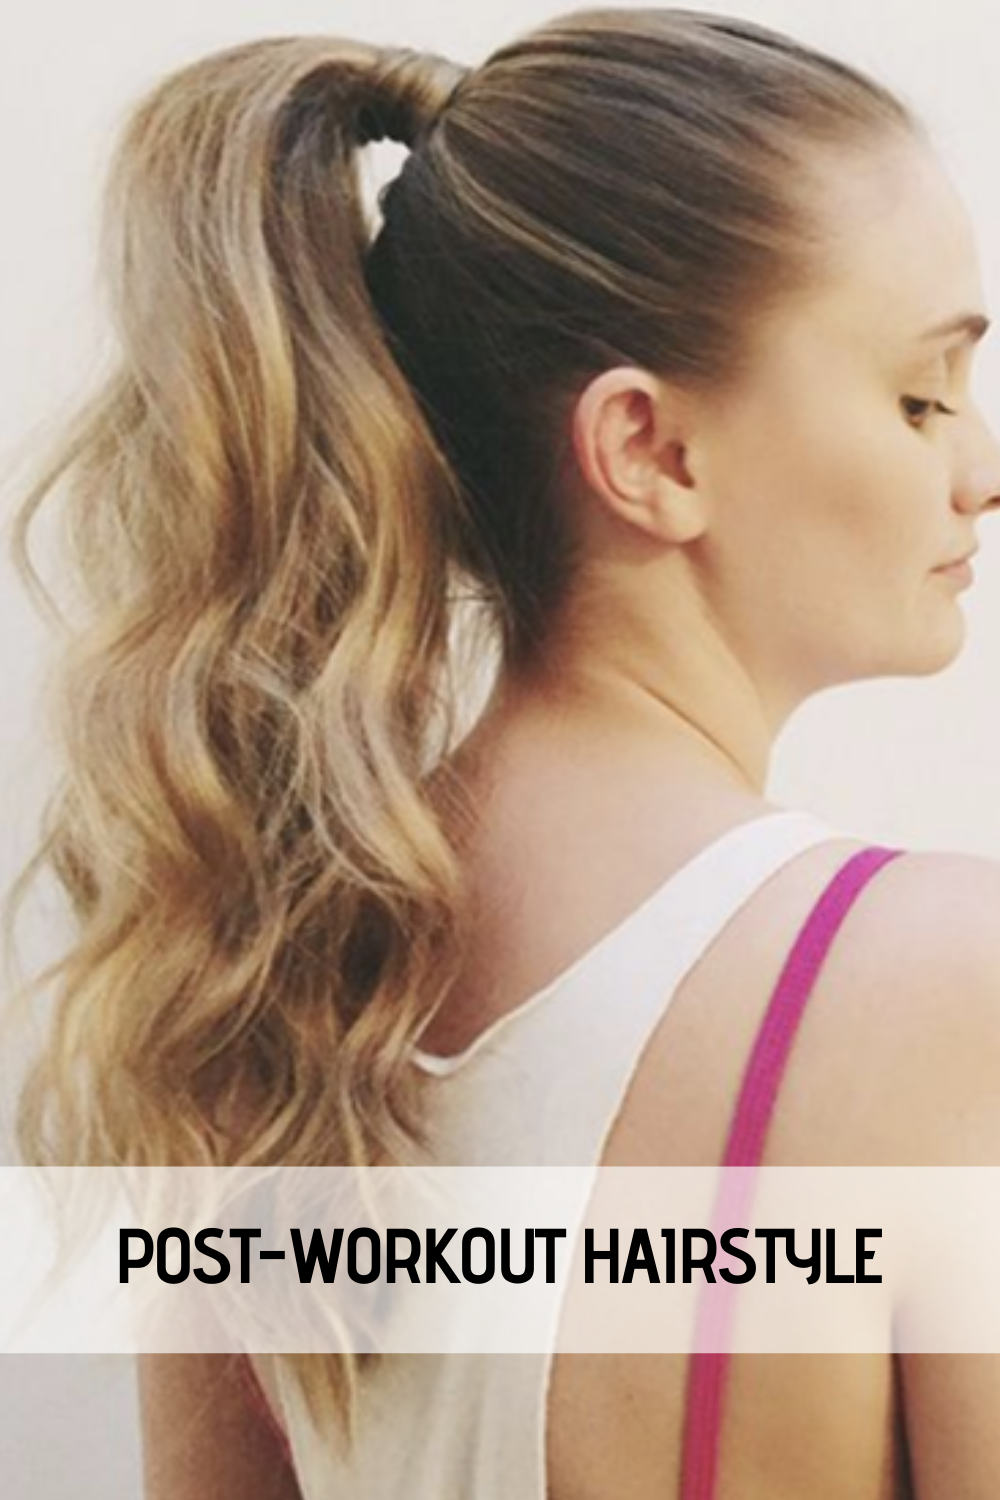 How To Tame Your Post workout Hair Situation (Without Showering) in Hair Style